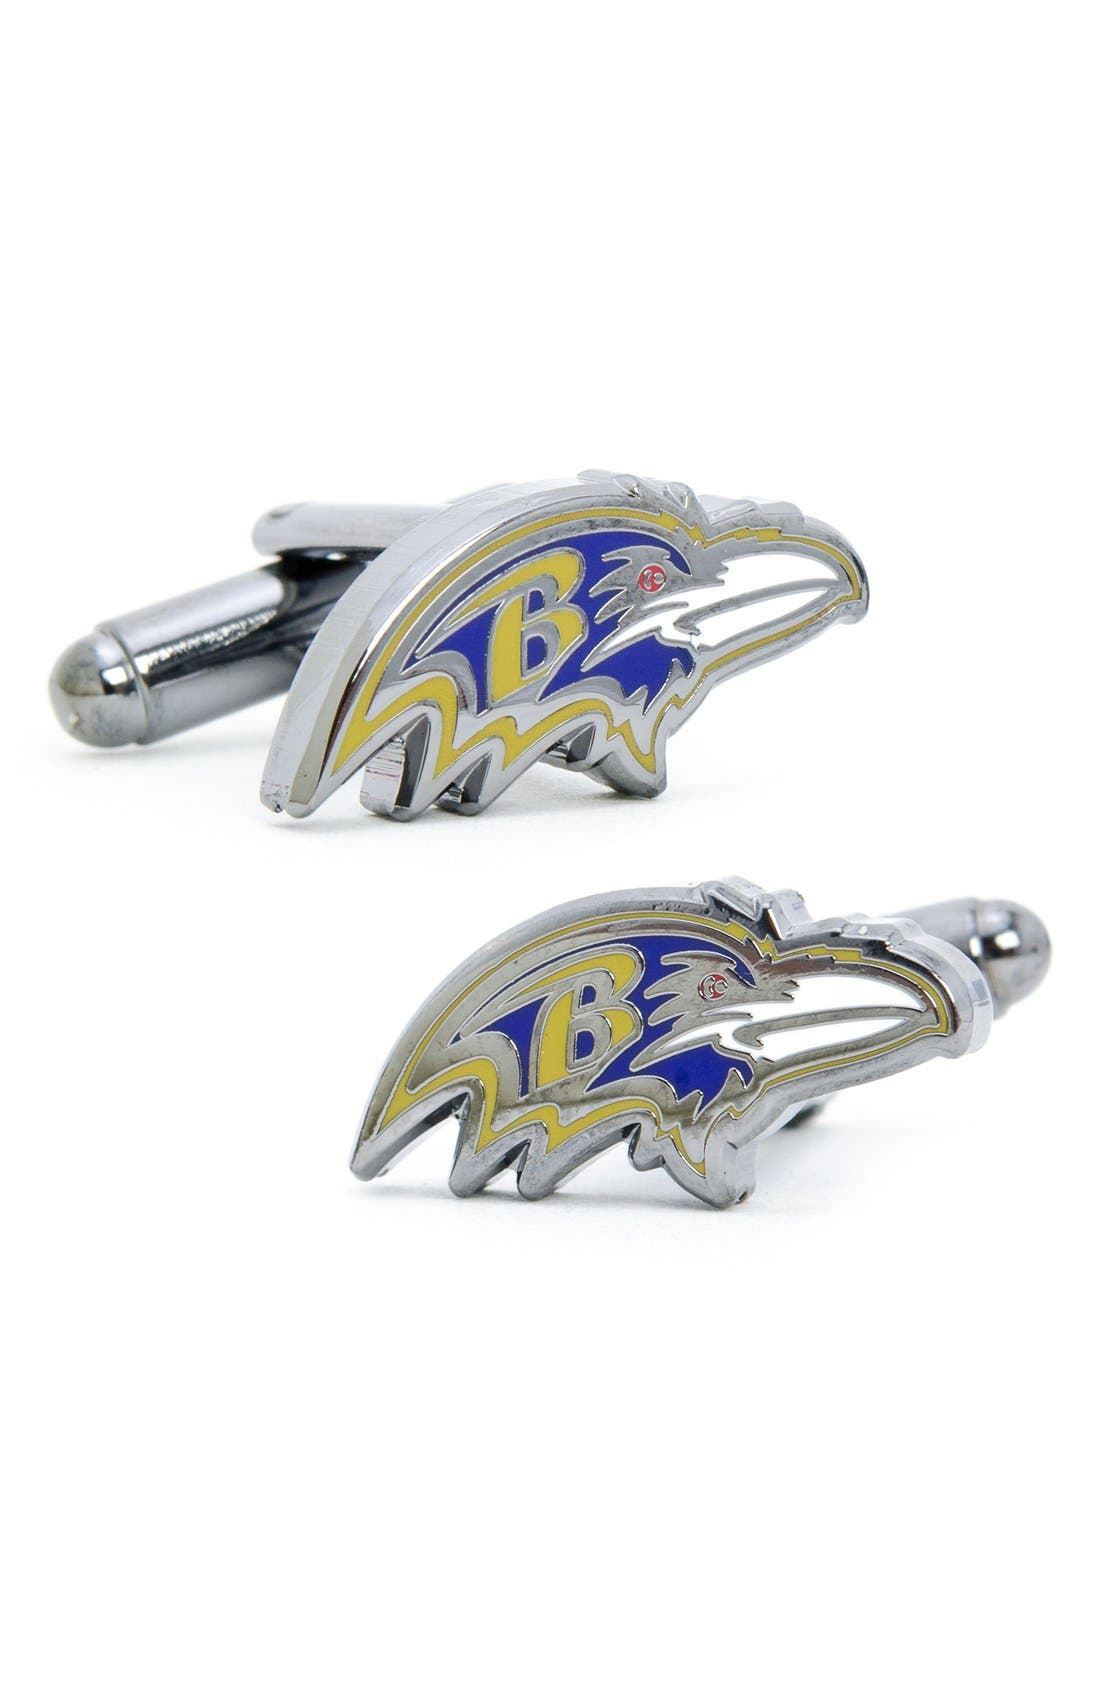 CUFFLINKS, INC. Baltimore Ravens Cuff Links